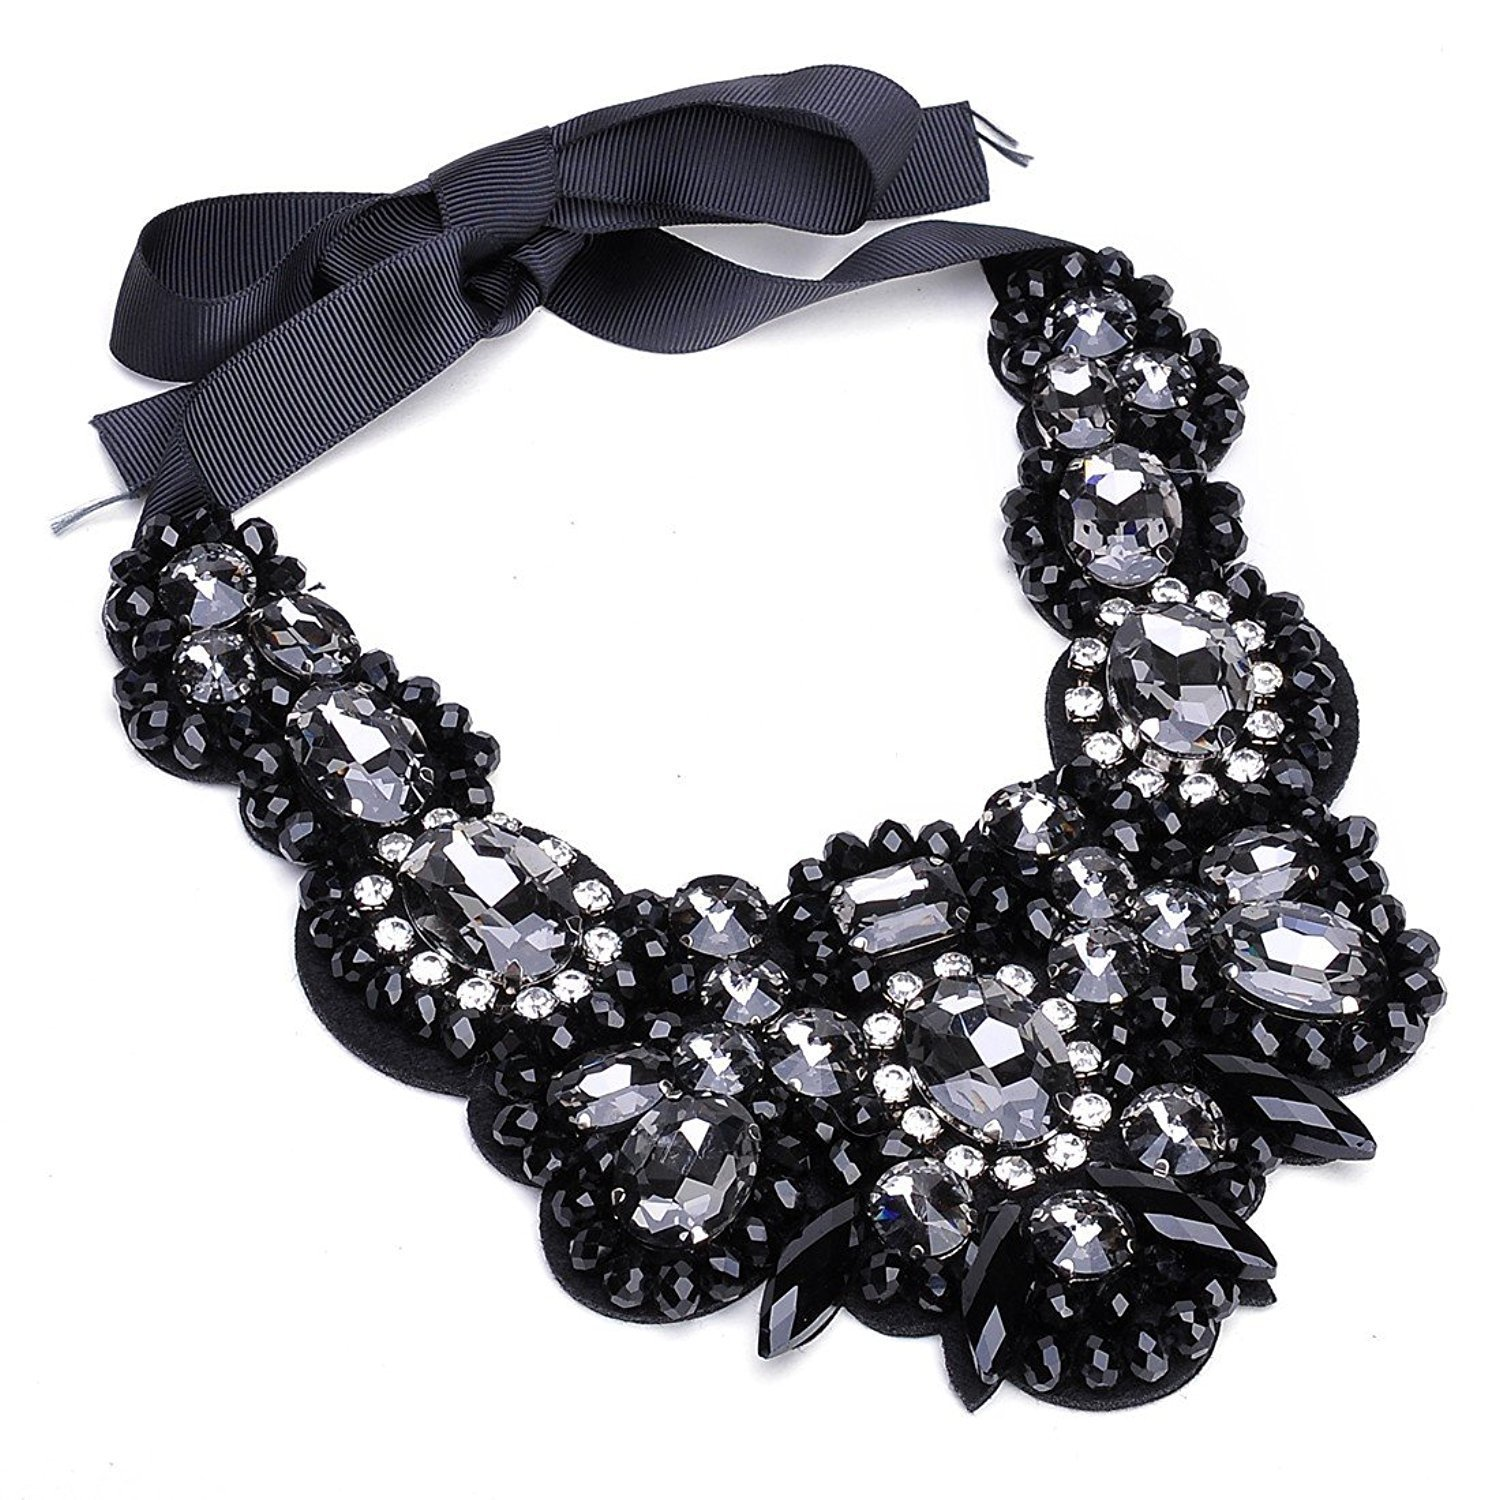 Holylove Choker Necklaces for Women, Black Statement Necklace Bling Fashion Jewelry with Gift Box